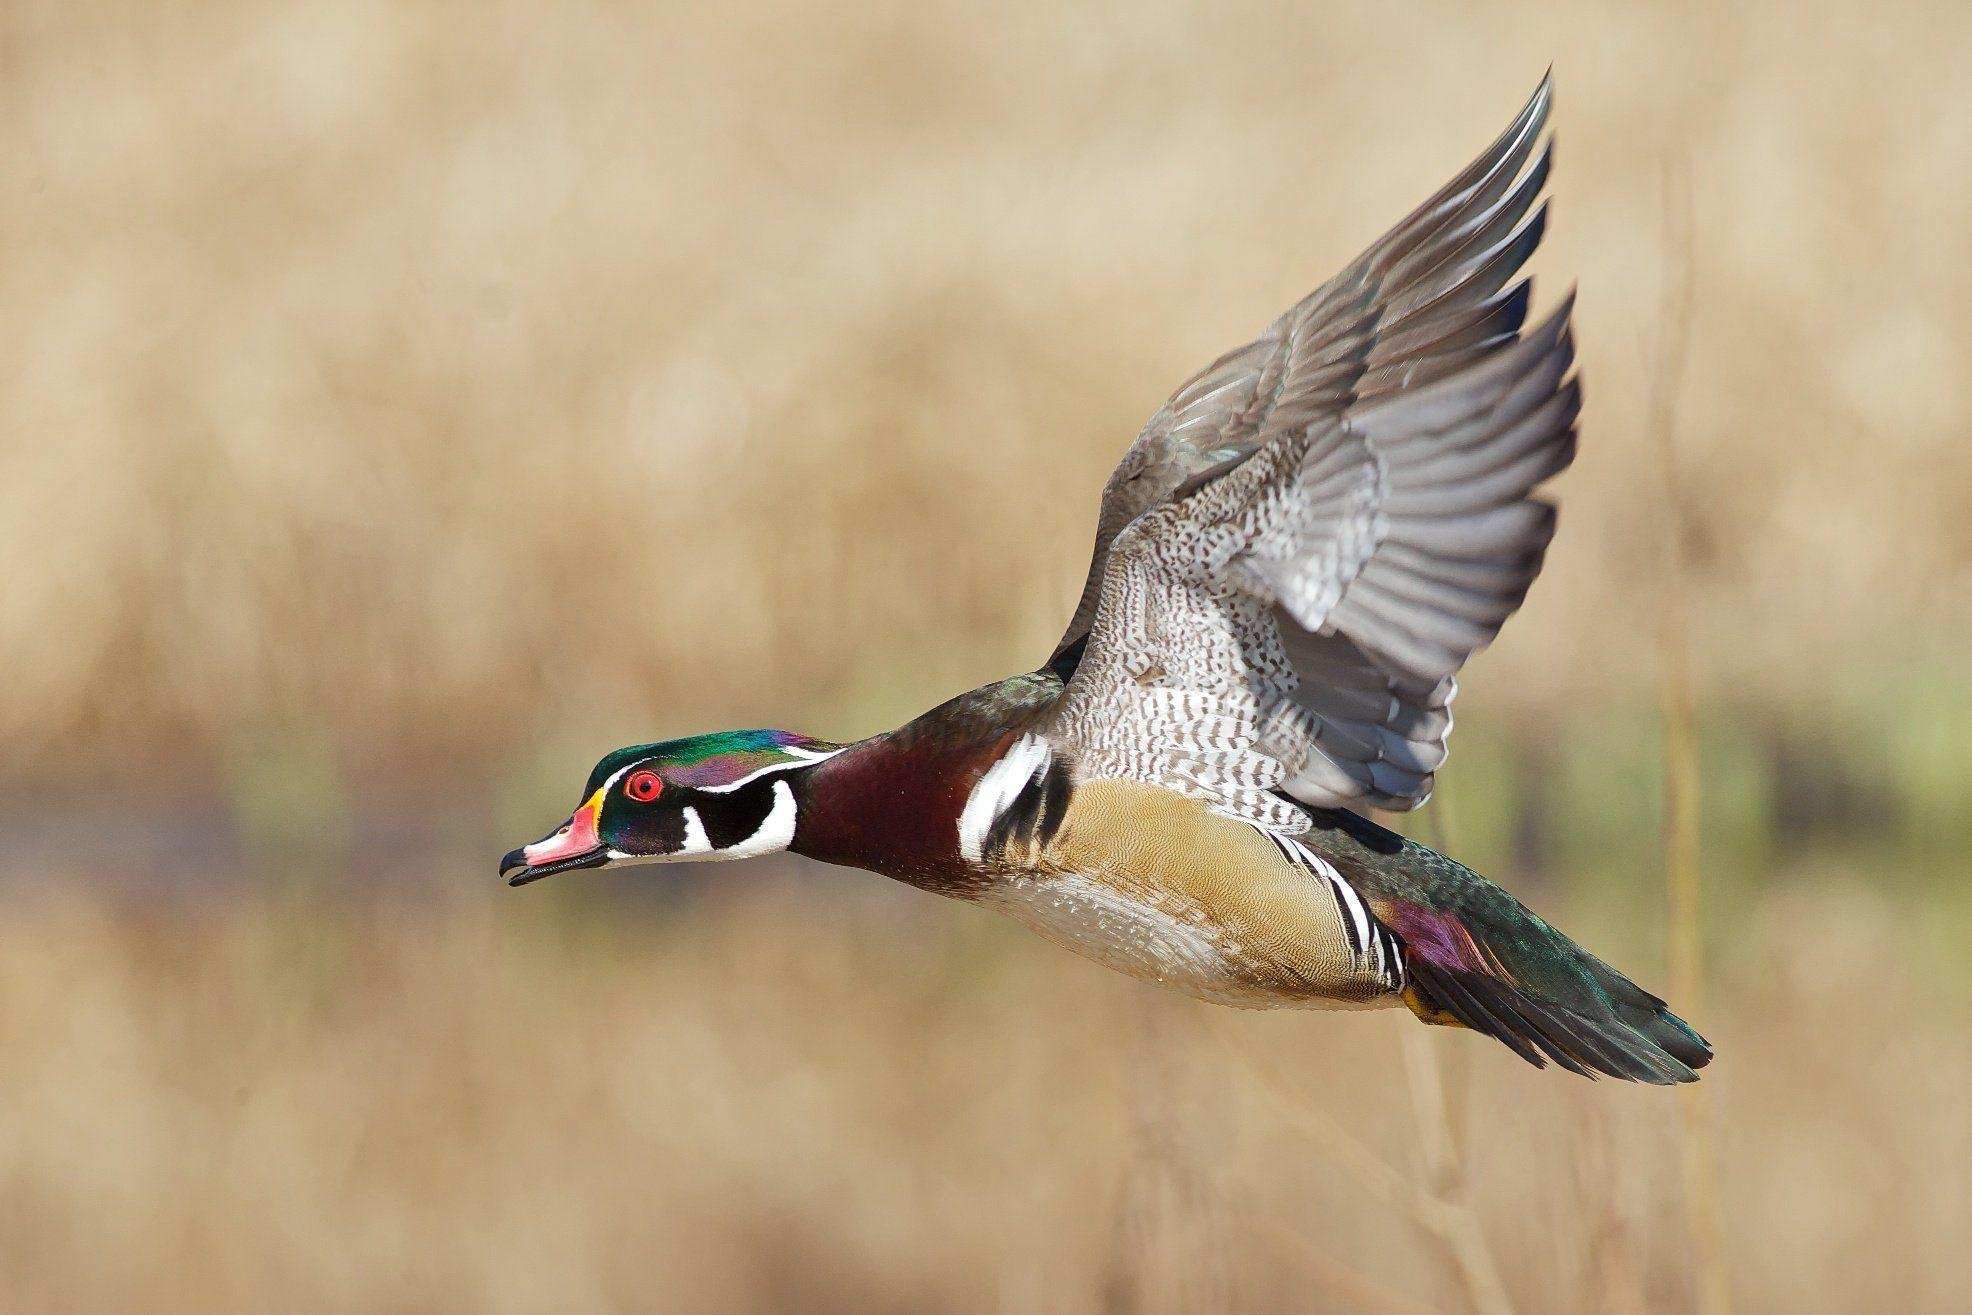 Wood Duck Wallpapers - Wallpaper Cave Wood Ducks Flying